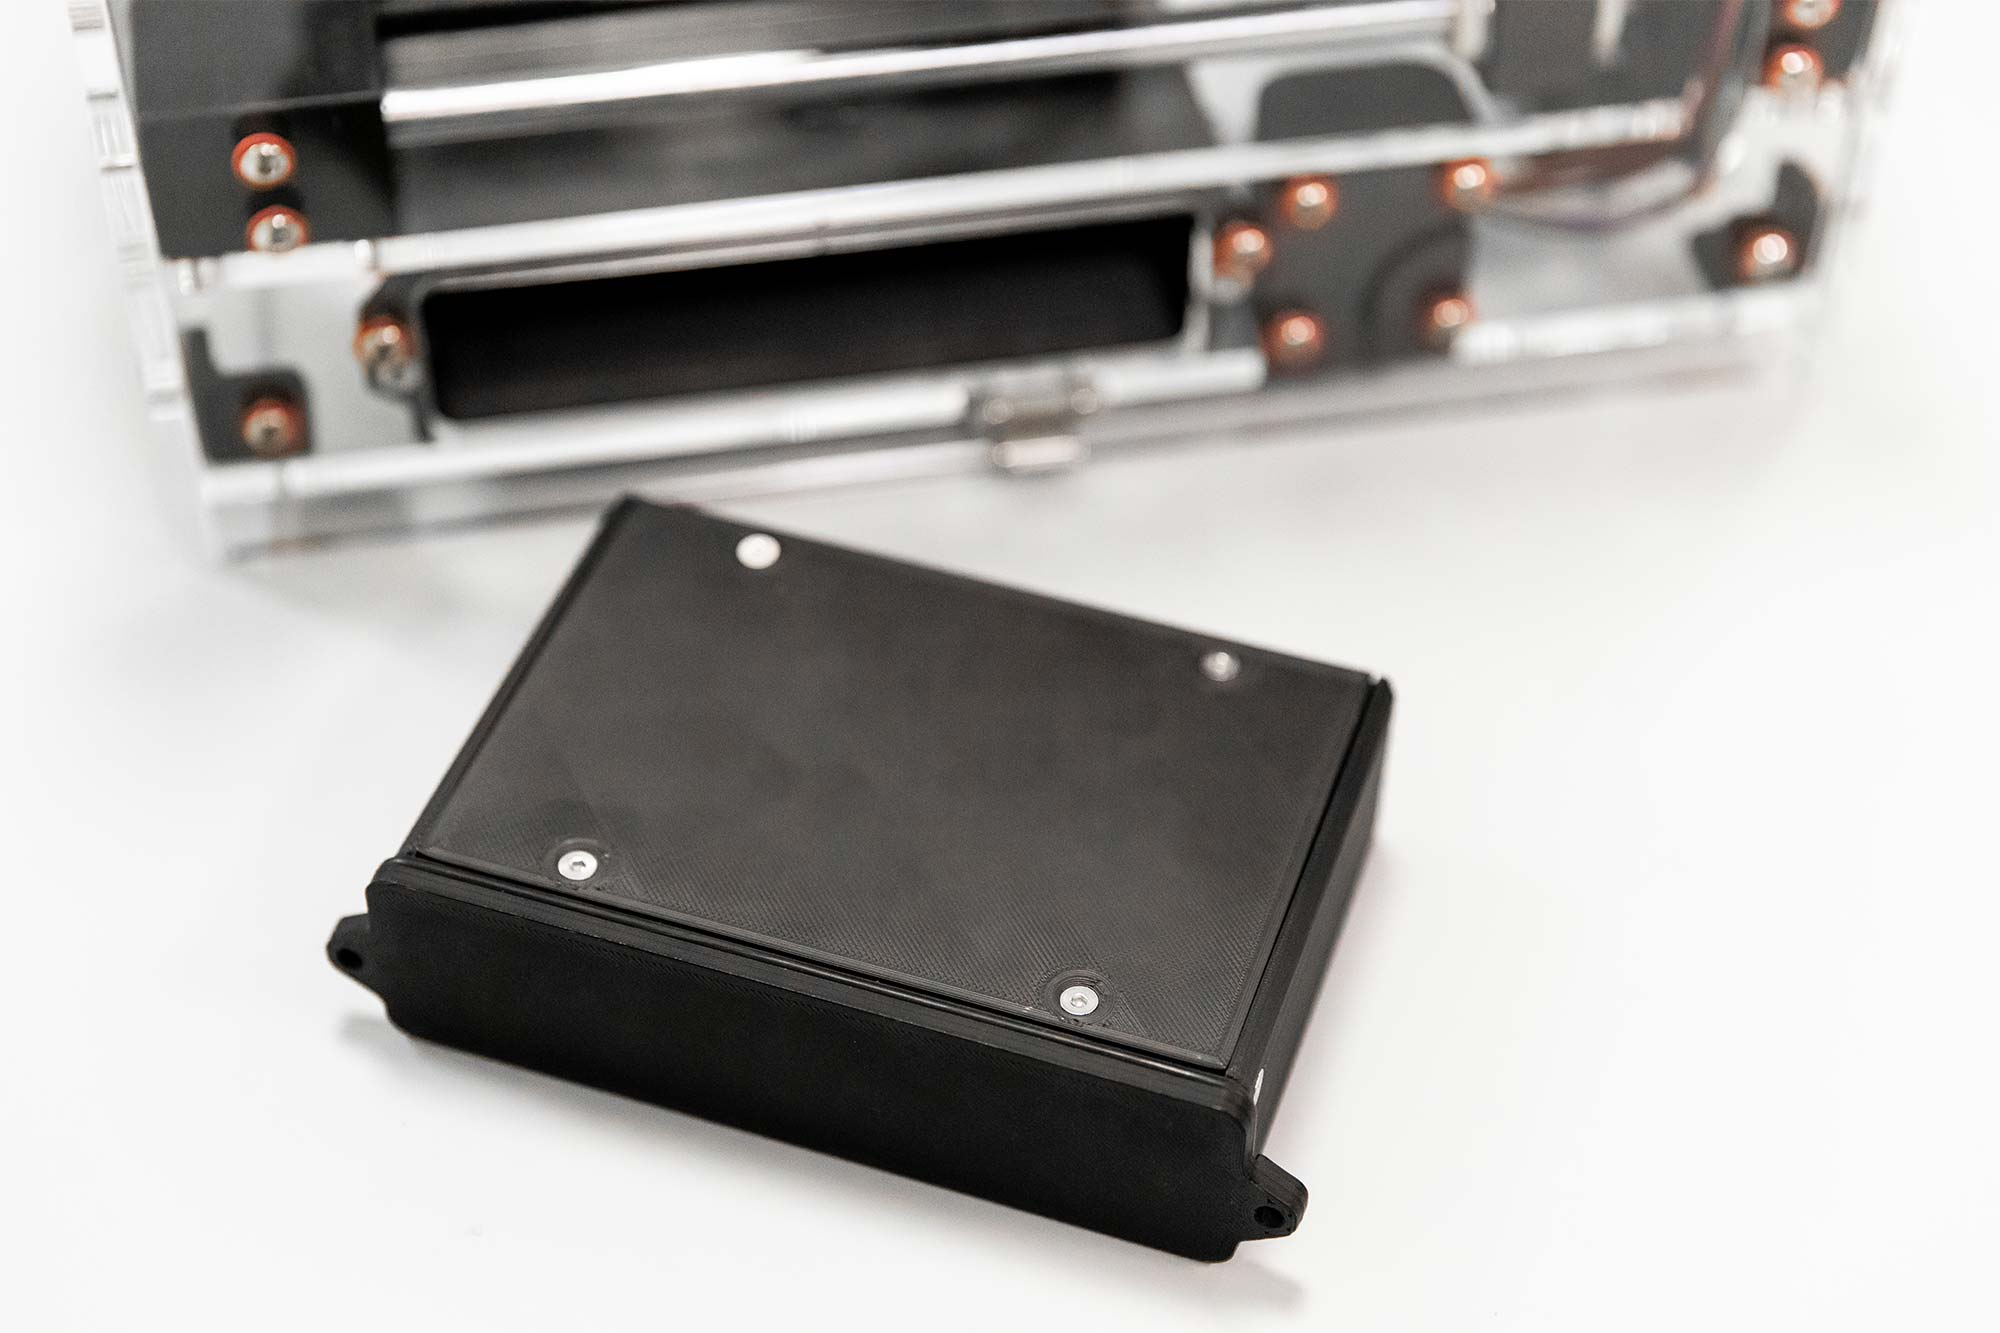 Photo of Syp autosampler device on a benchtop in the lab. Closeup on battery unit.